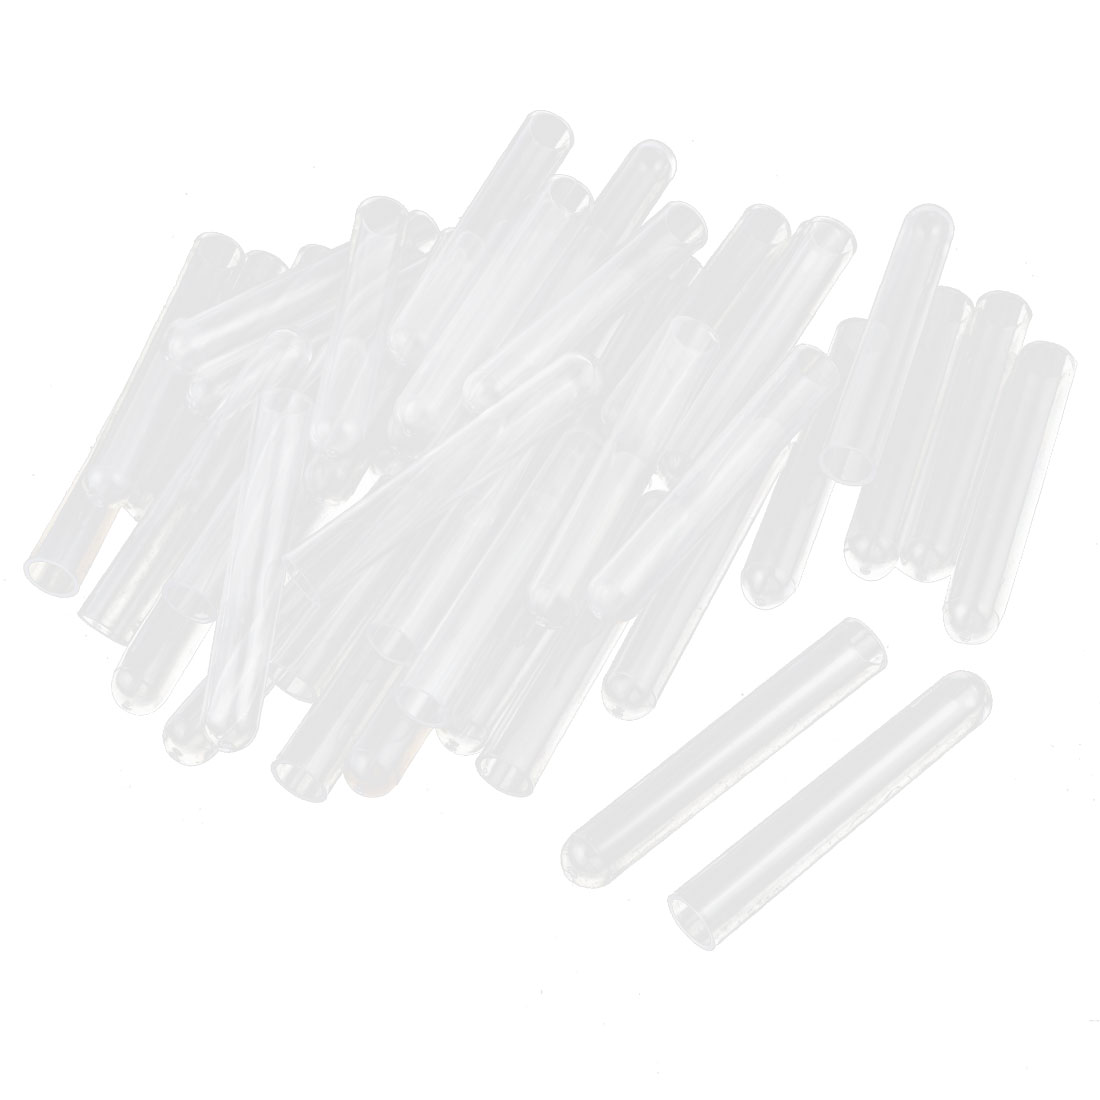 Polypropylene-Liquid-Chemicals-Testing-Container-Tubing-Test-Tube-100pcs